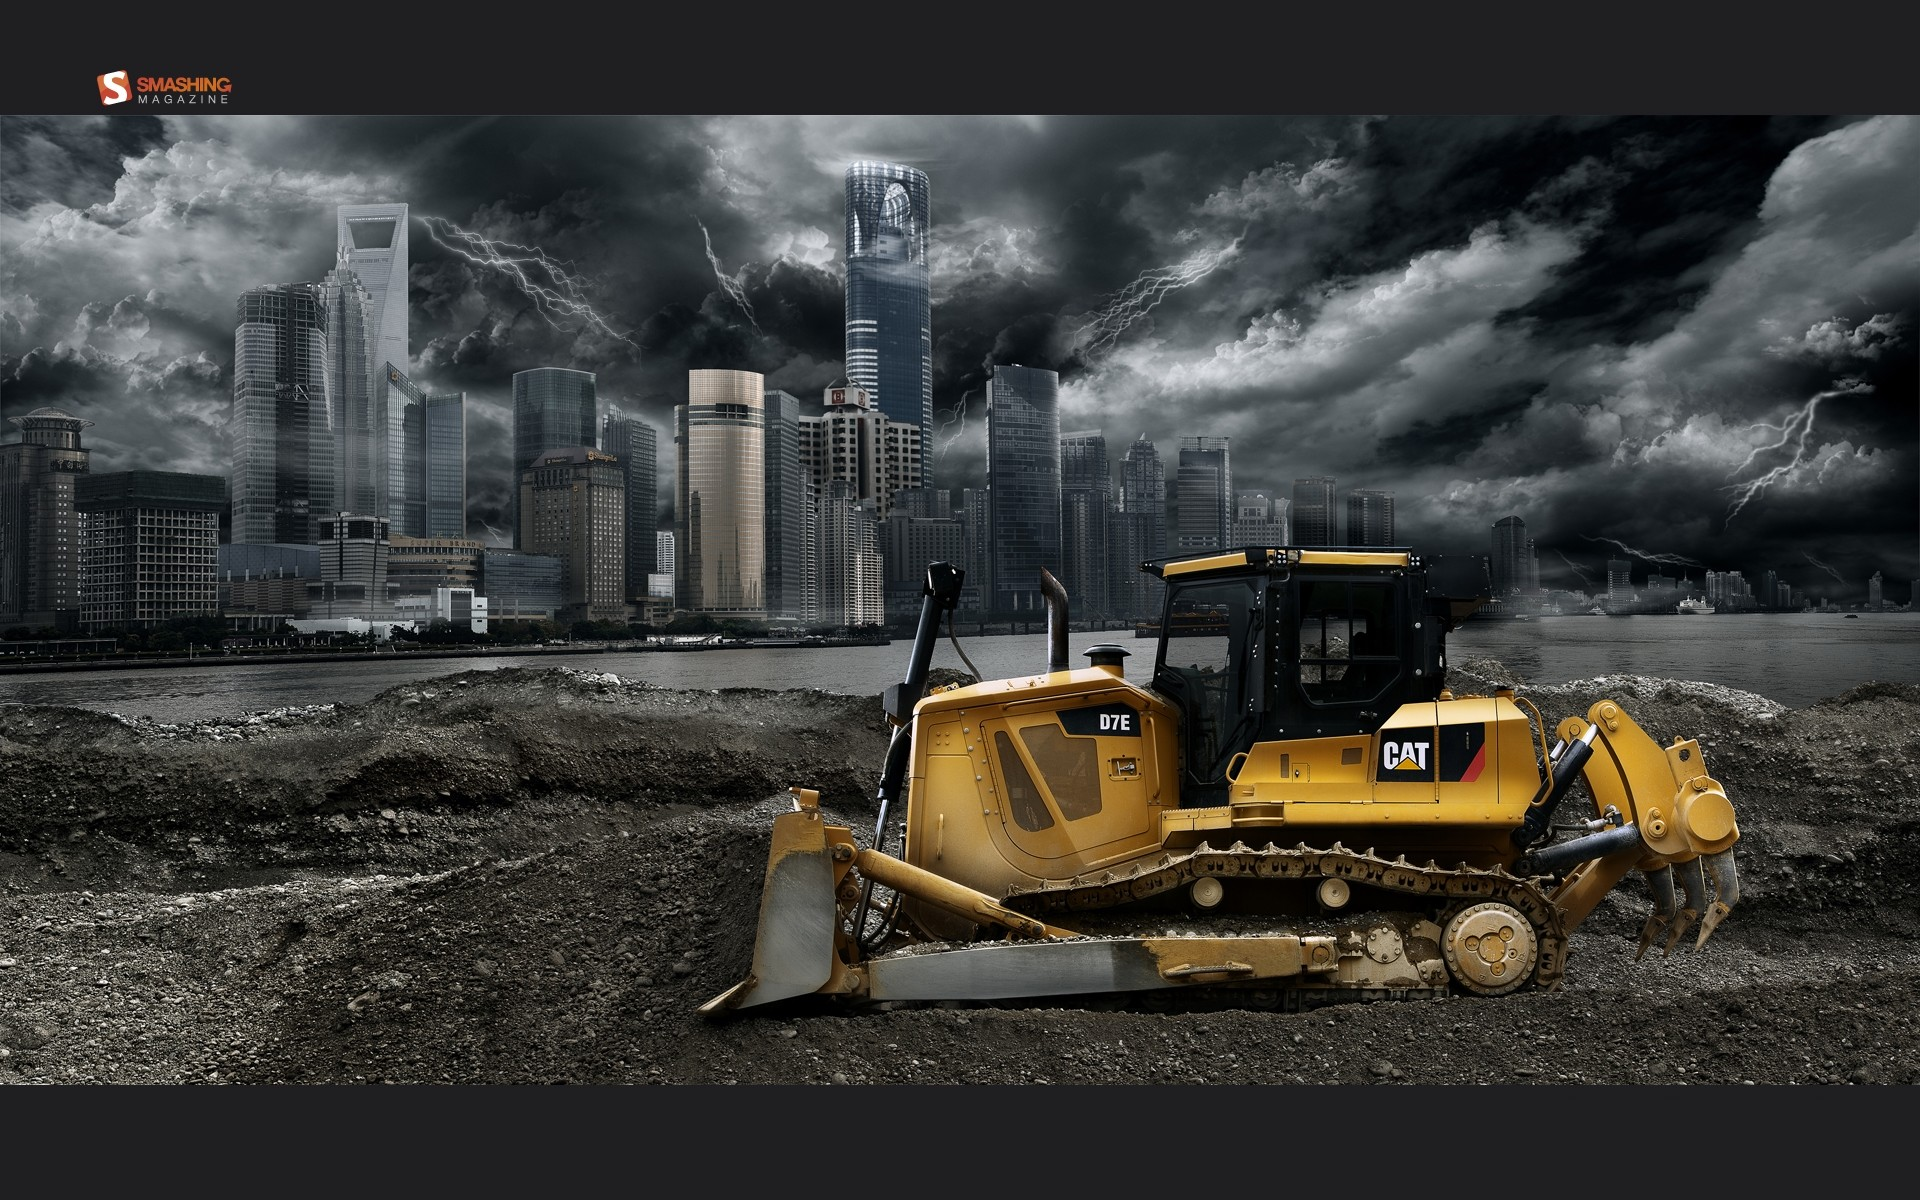 1920x1200 Construction Building Wallpaper Image Gallery - HCPR ...